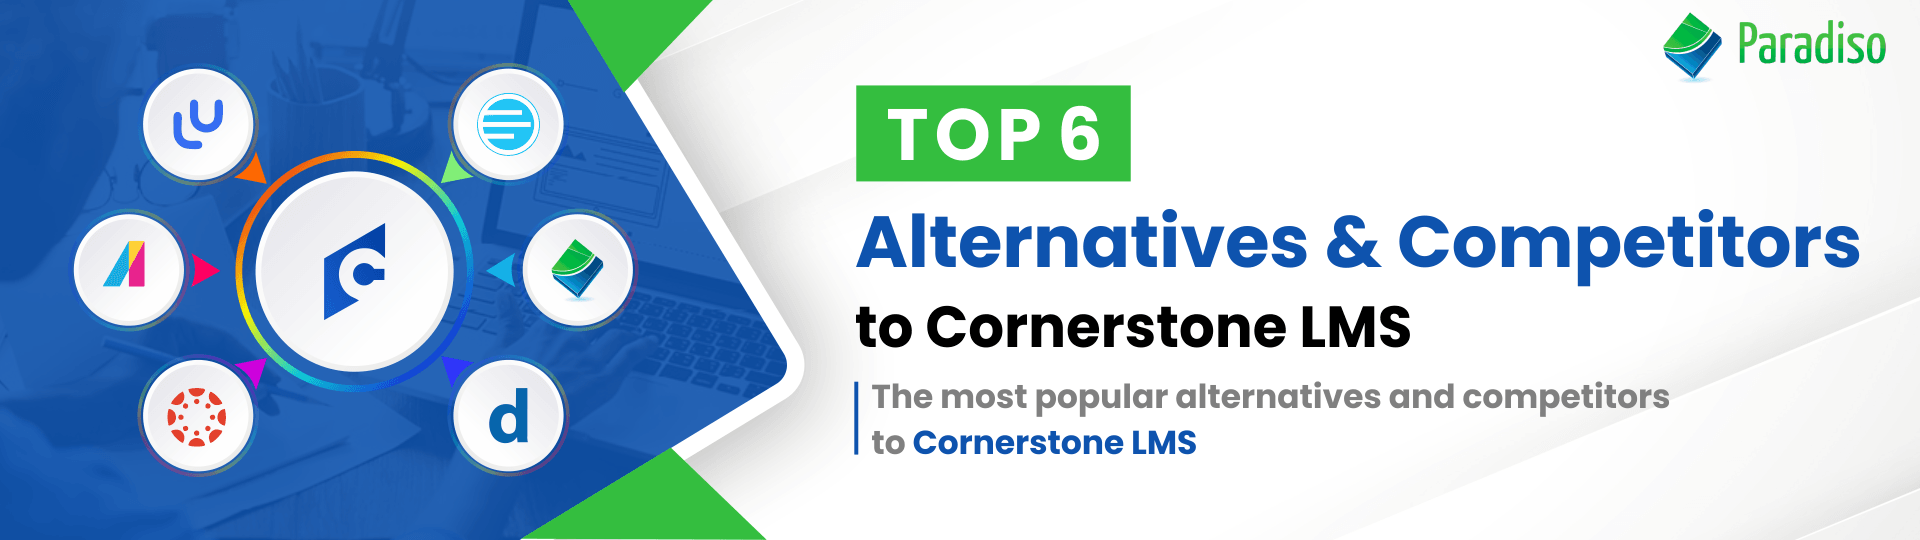 Top 6 Alternatives & Competitors to Cornerstone LMS